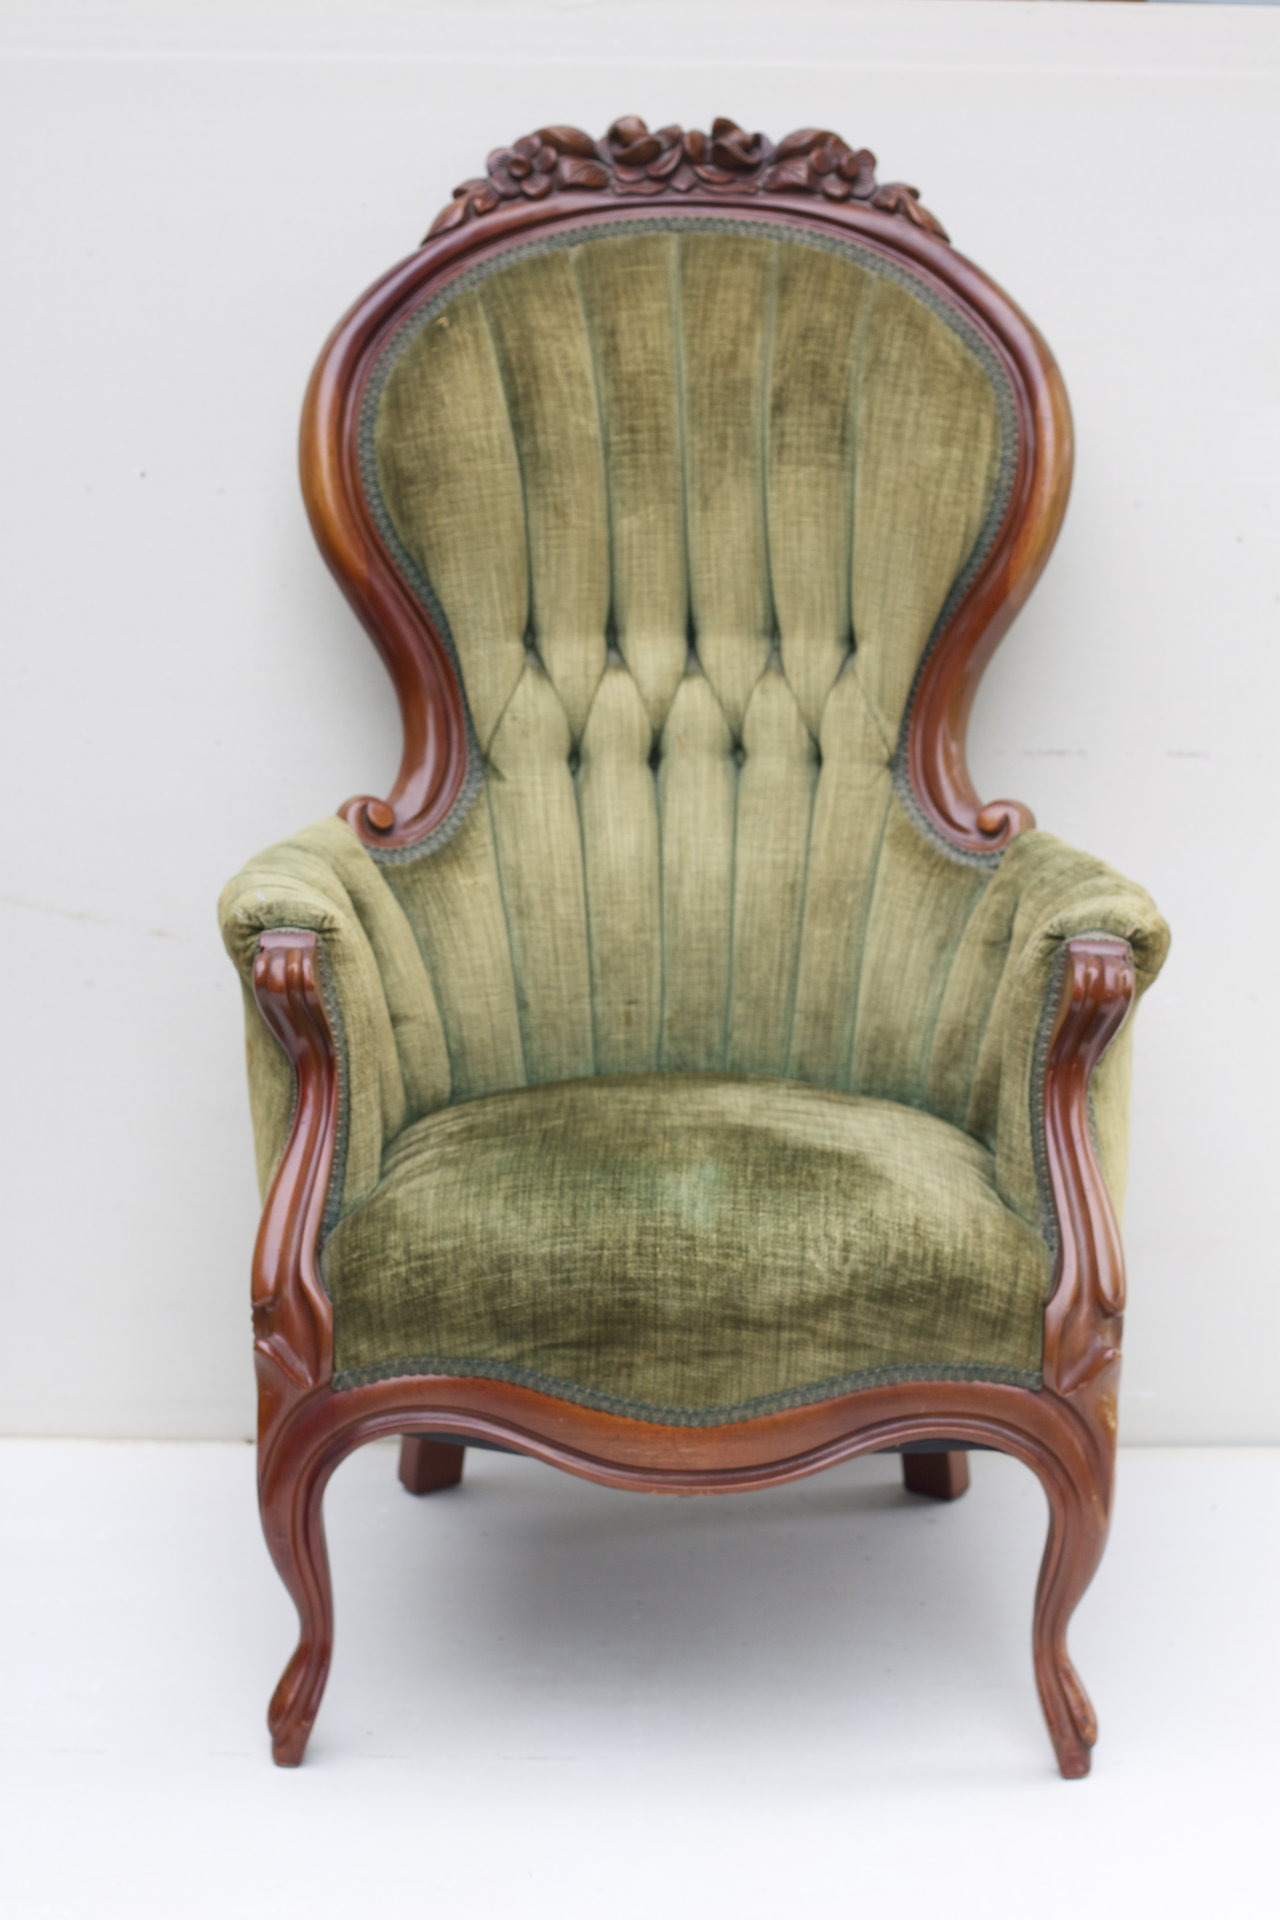 attractive vintage upholstered chair antique style furniture ebay rocking dining